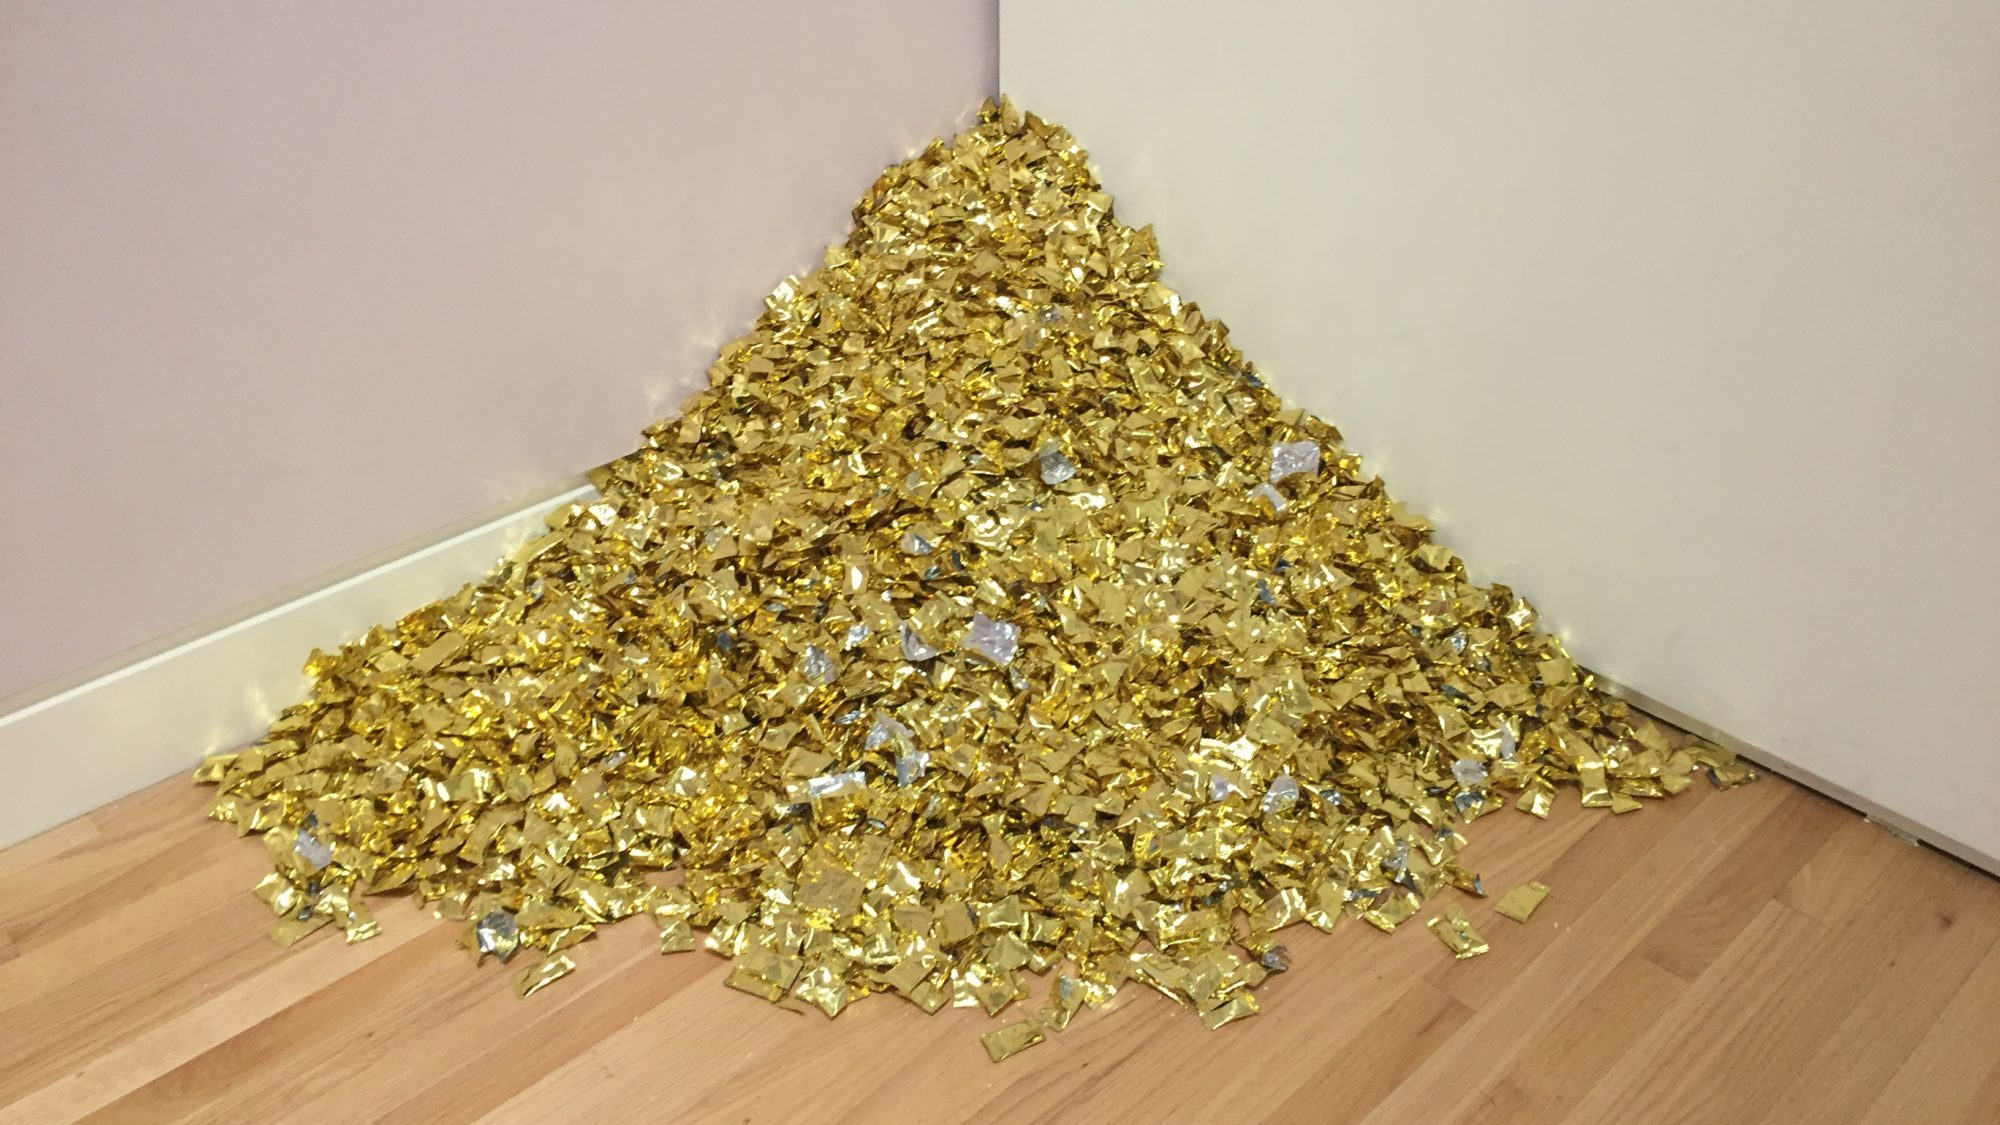 A small mountain of gold-wrapped candies in the corner between two walls